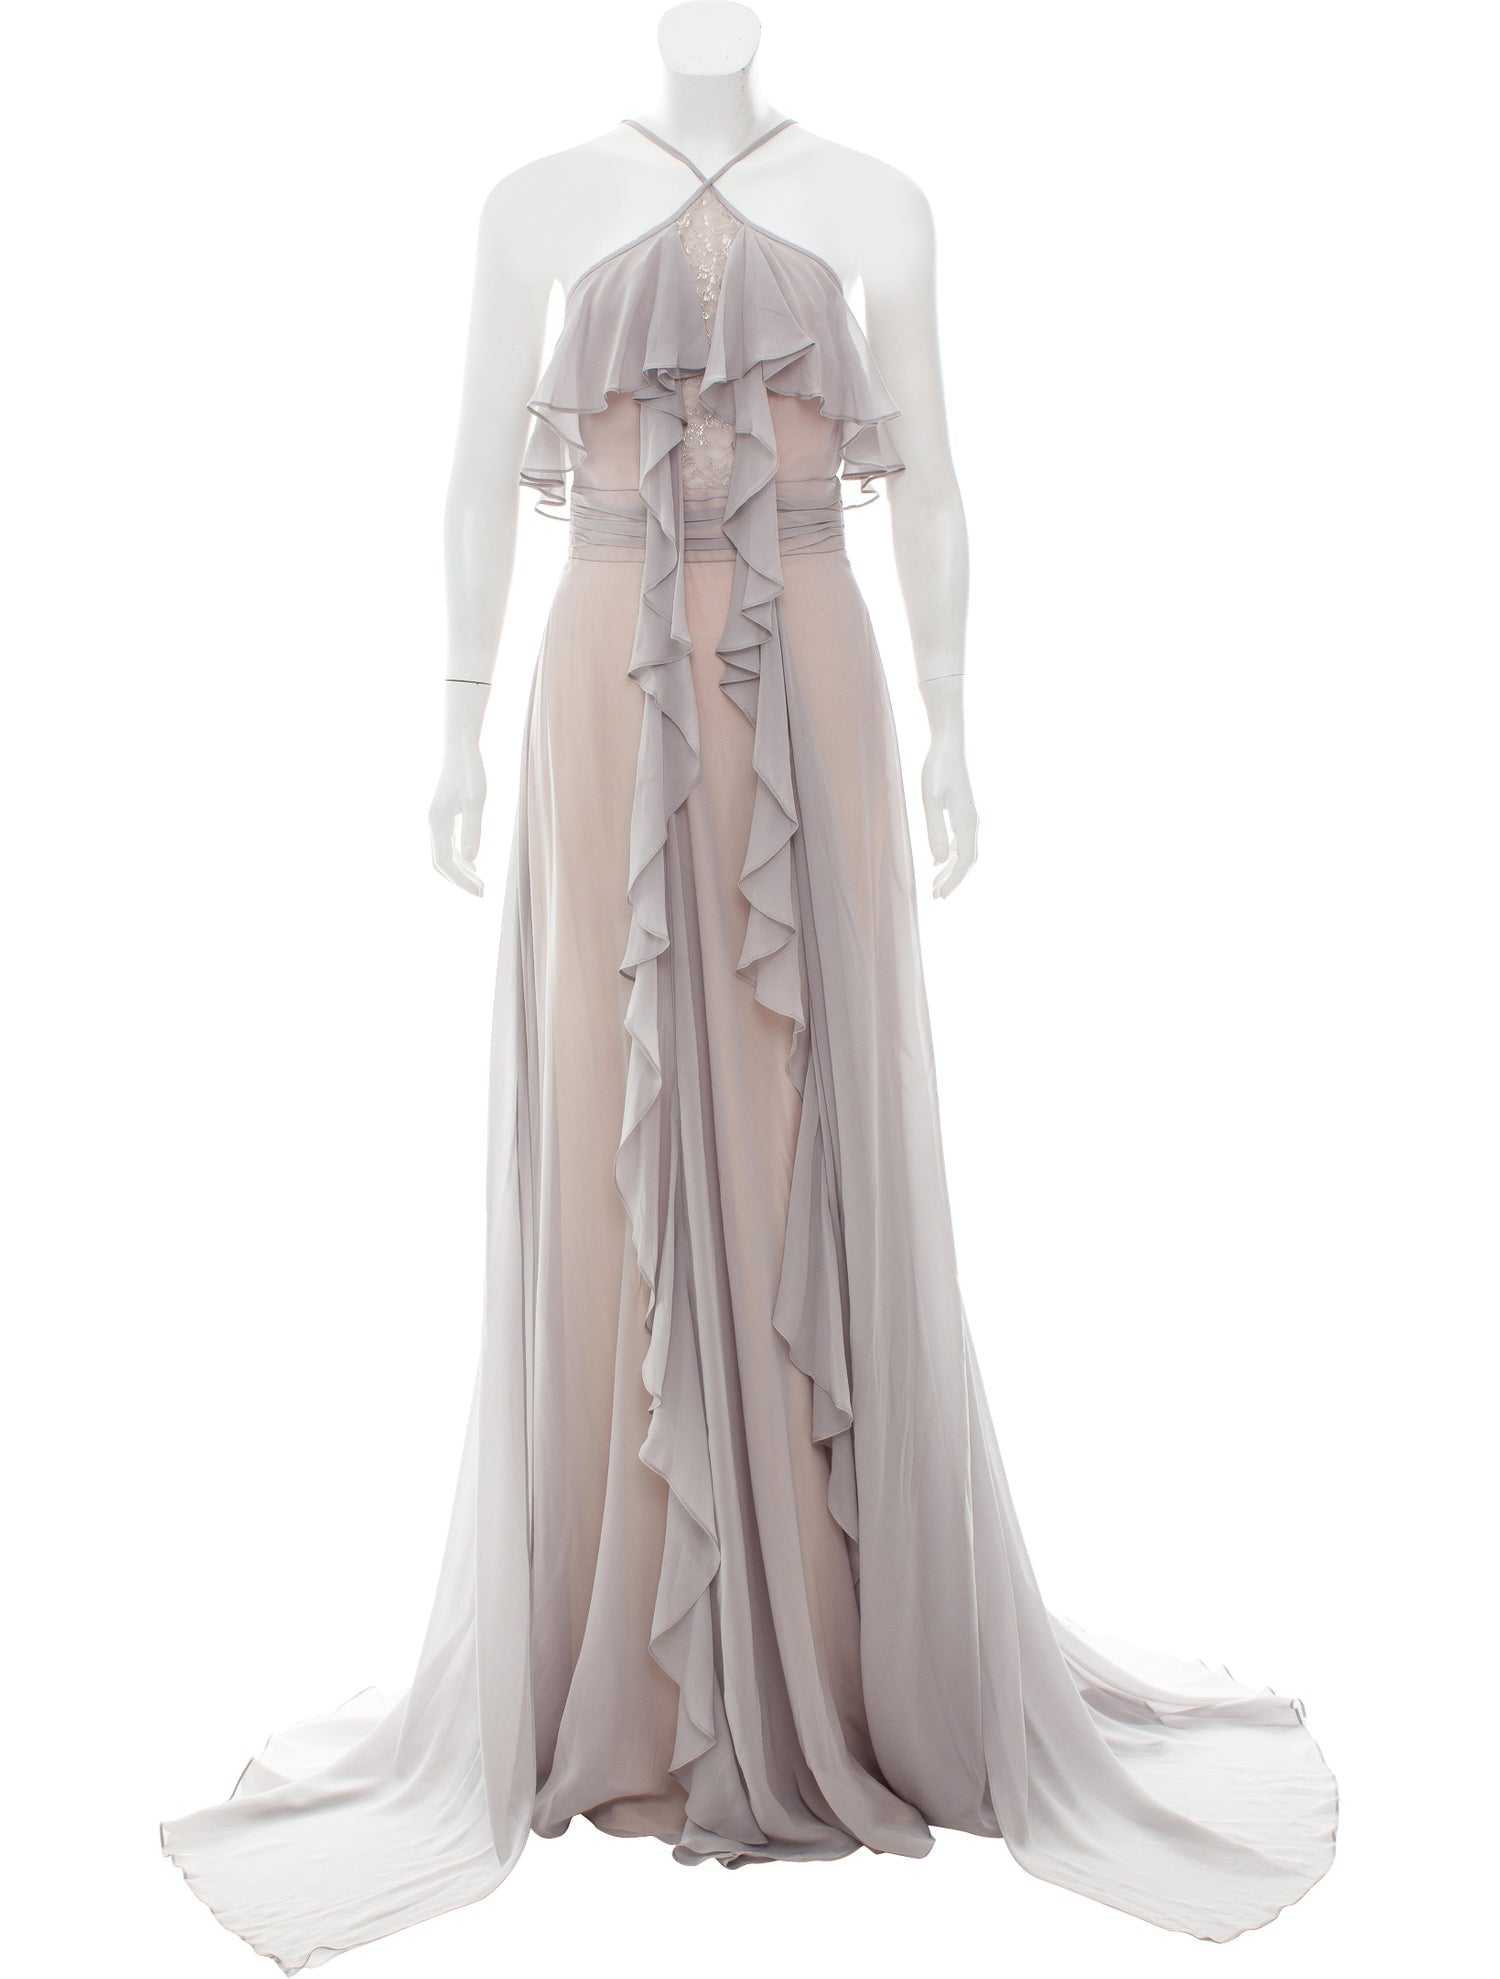 Lavender and Nude Gown